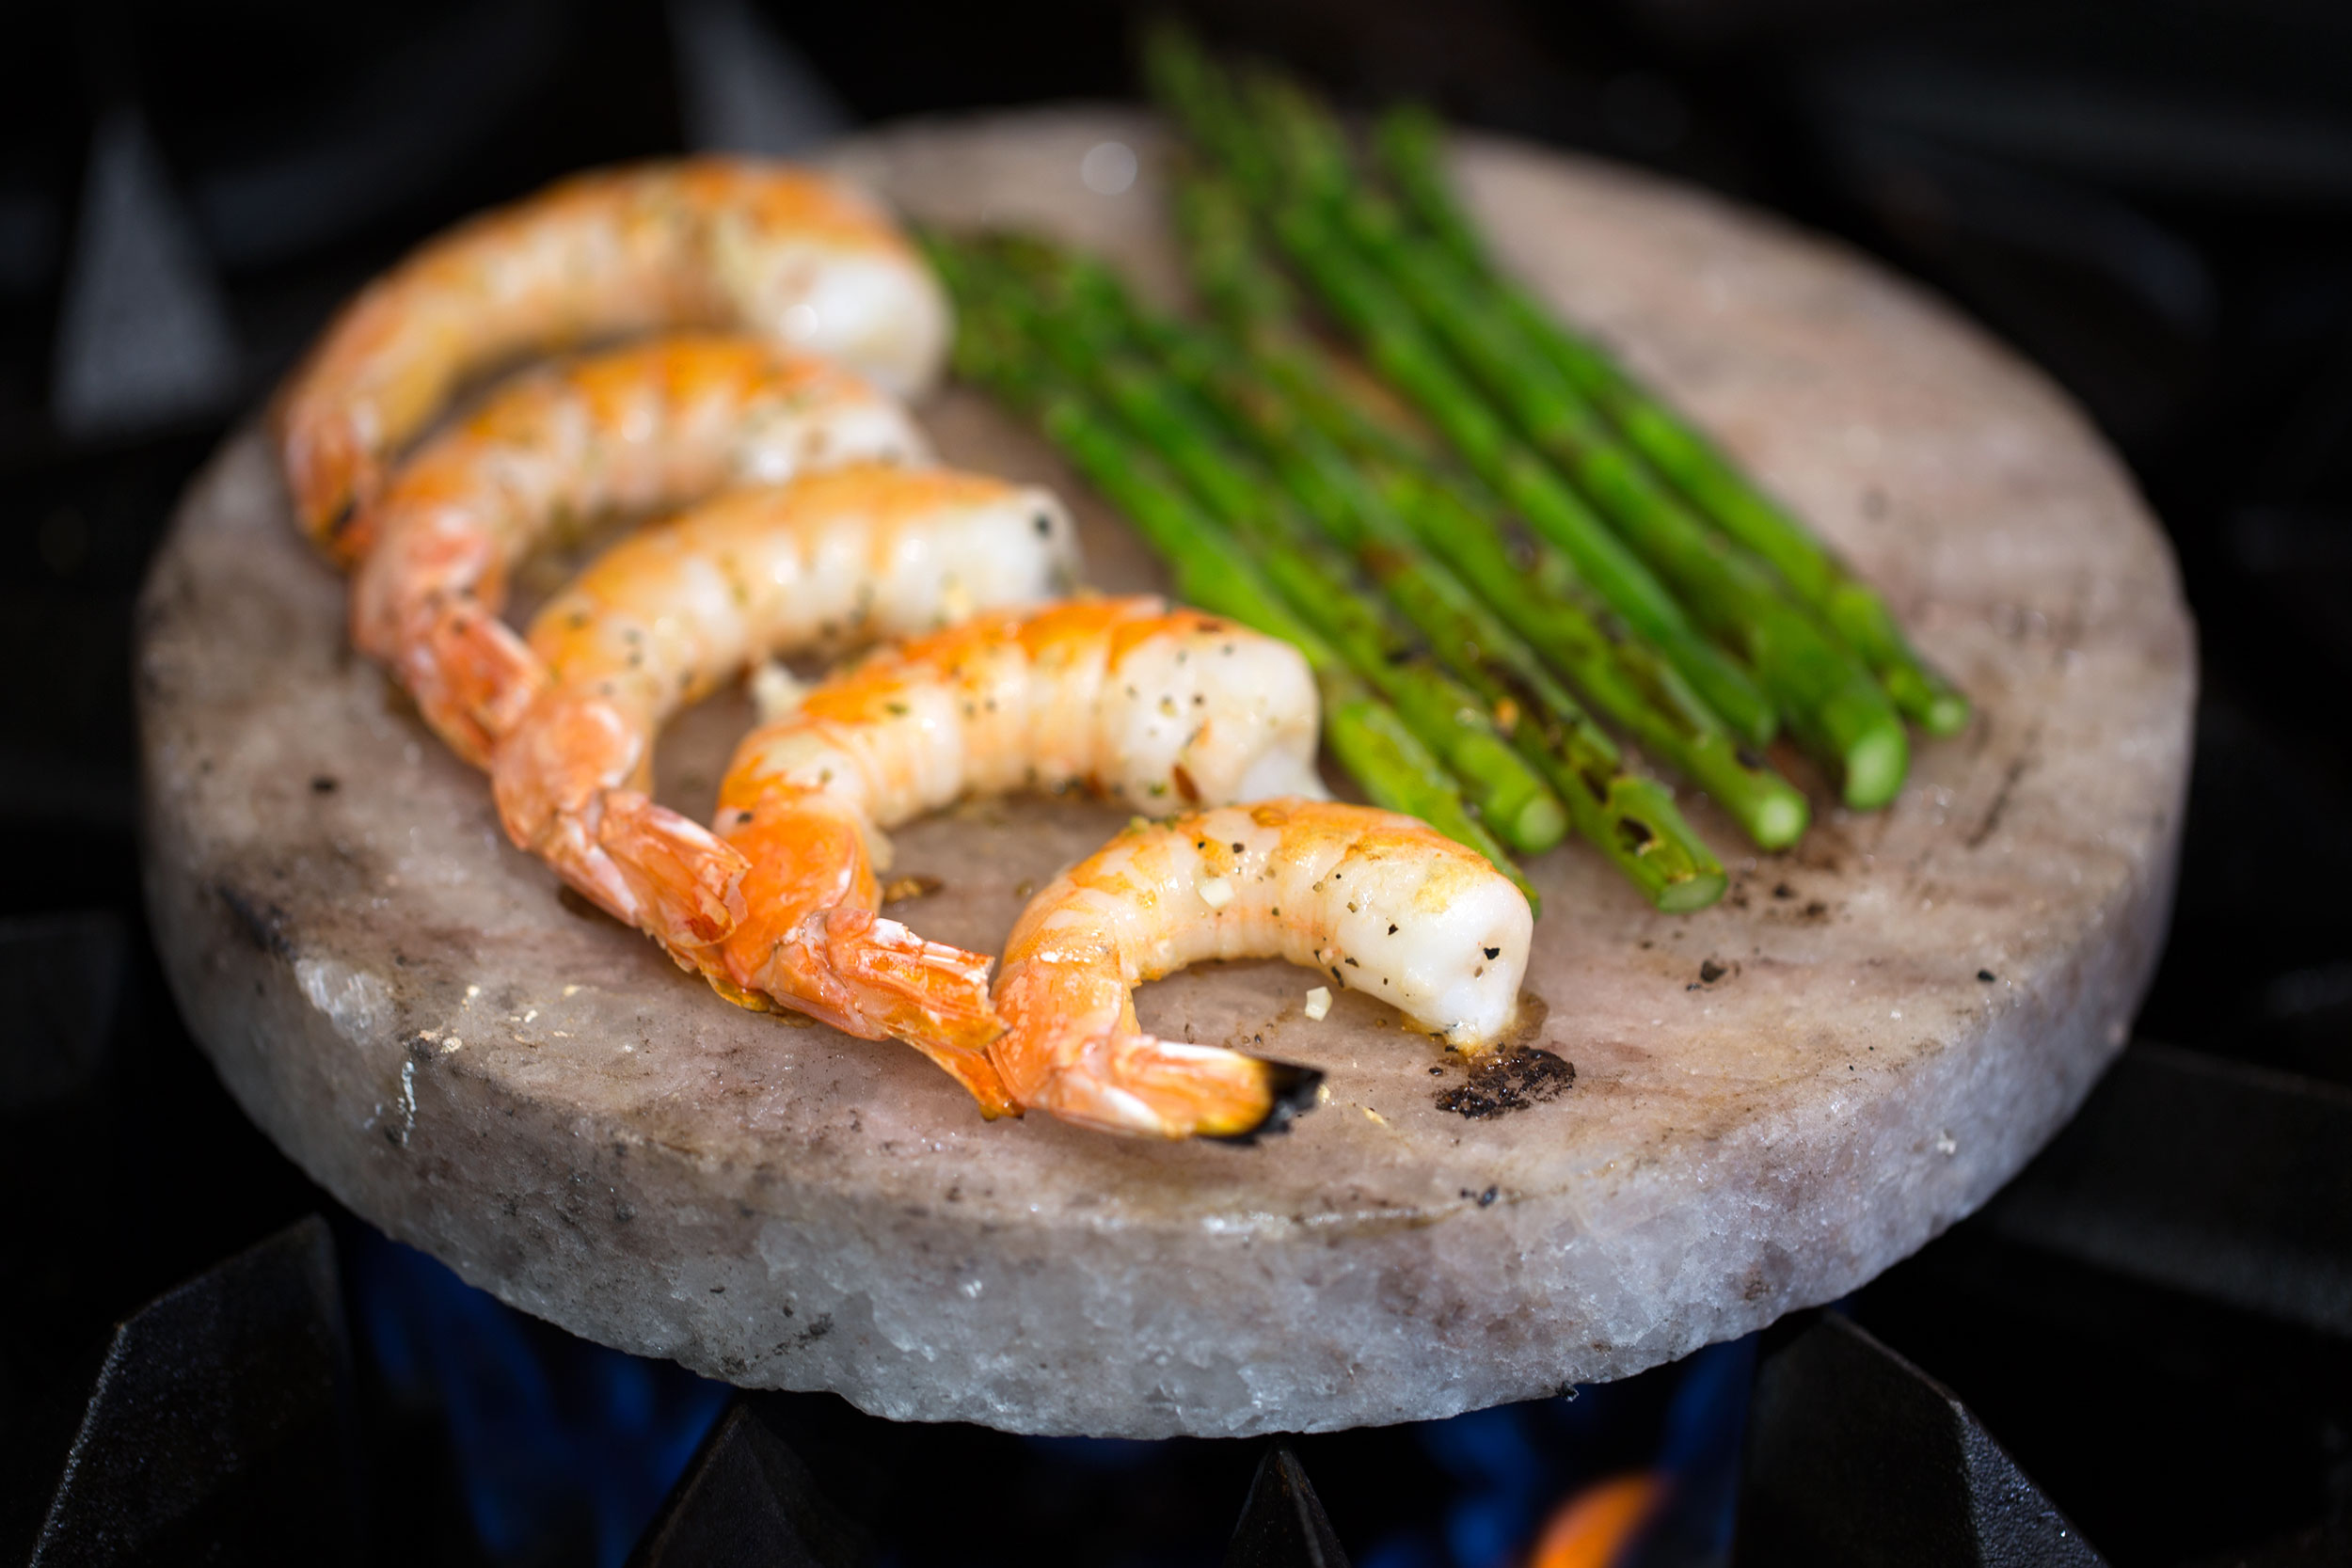 Salt Slab Cooked Lemon Shrimp and Asparagus